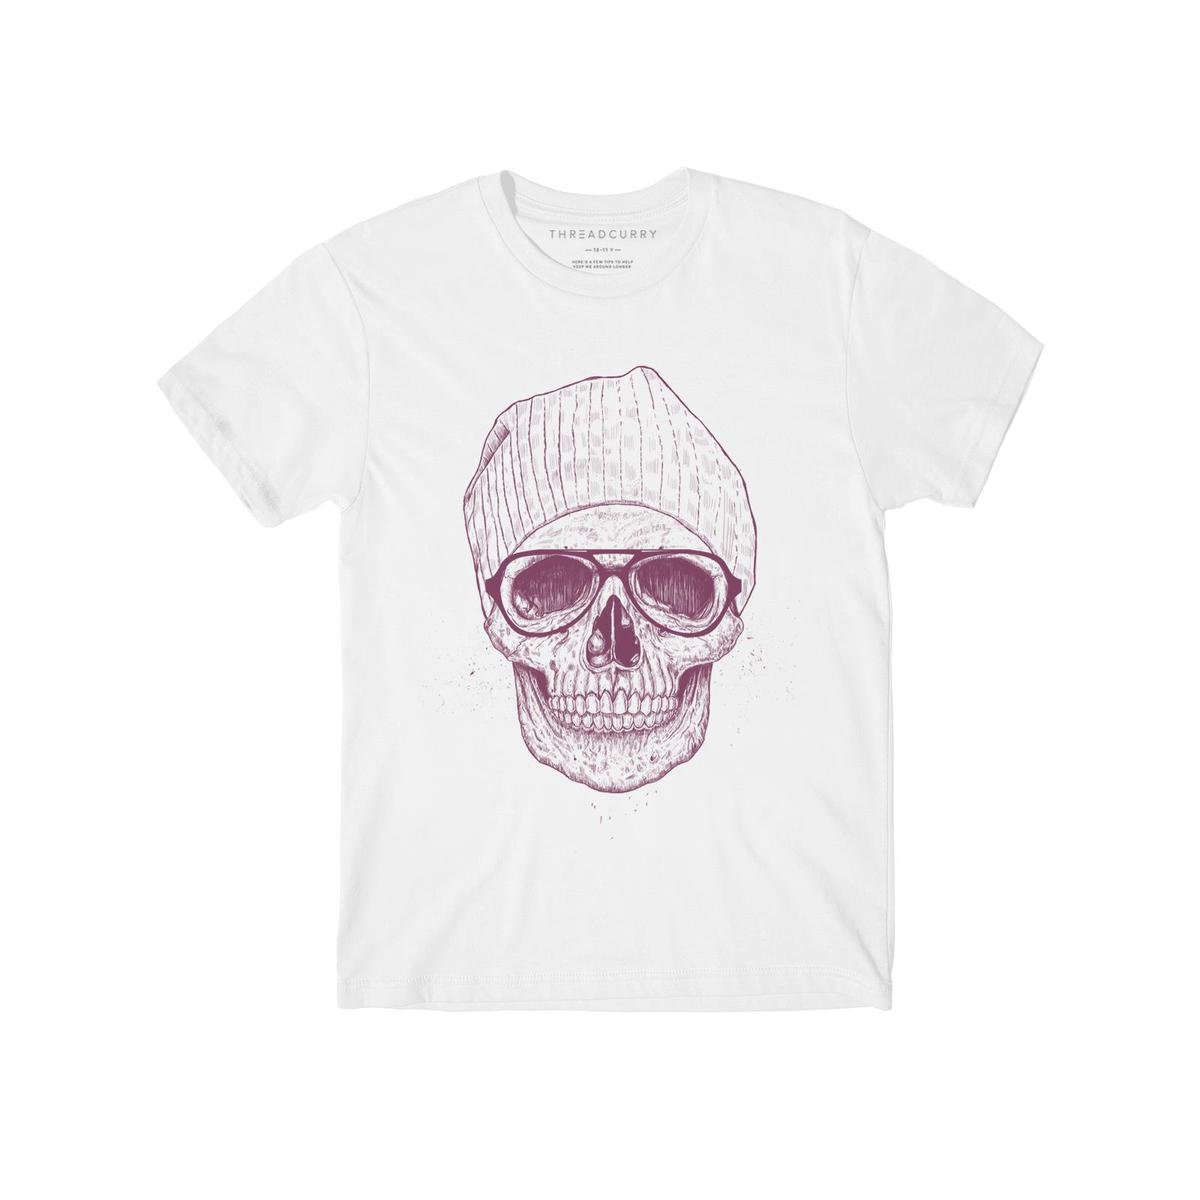 THREADCURRY - White Colored Hipster Skull   Hip Retro Funny Punk Graphic Printed T-shirt for Boys